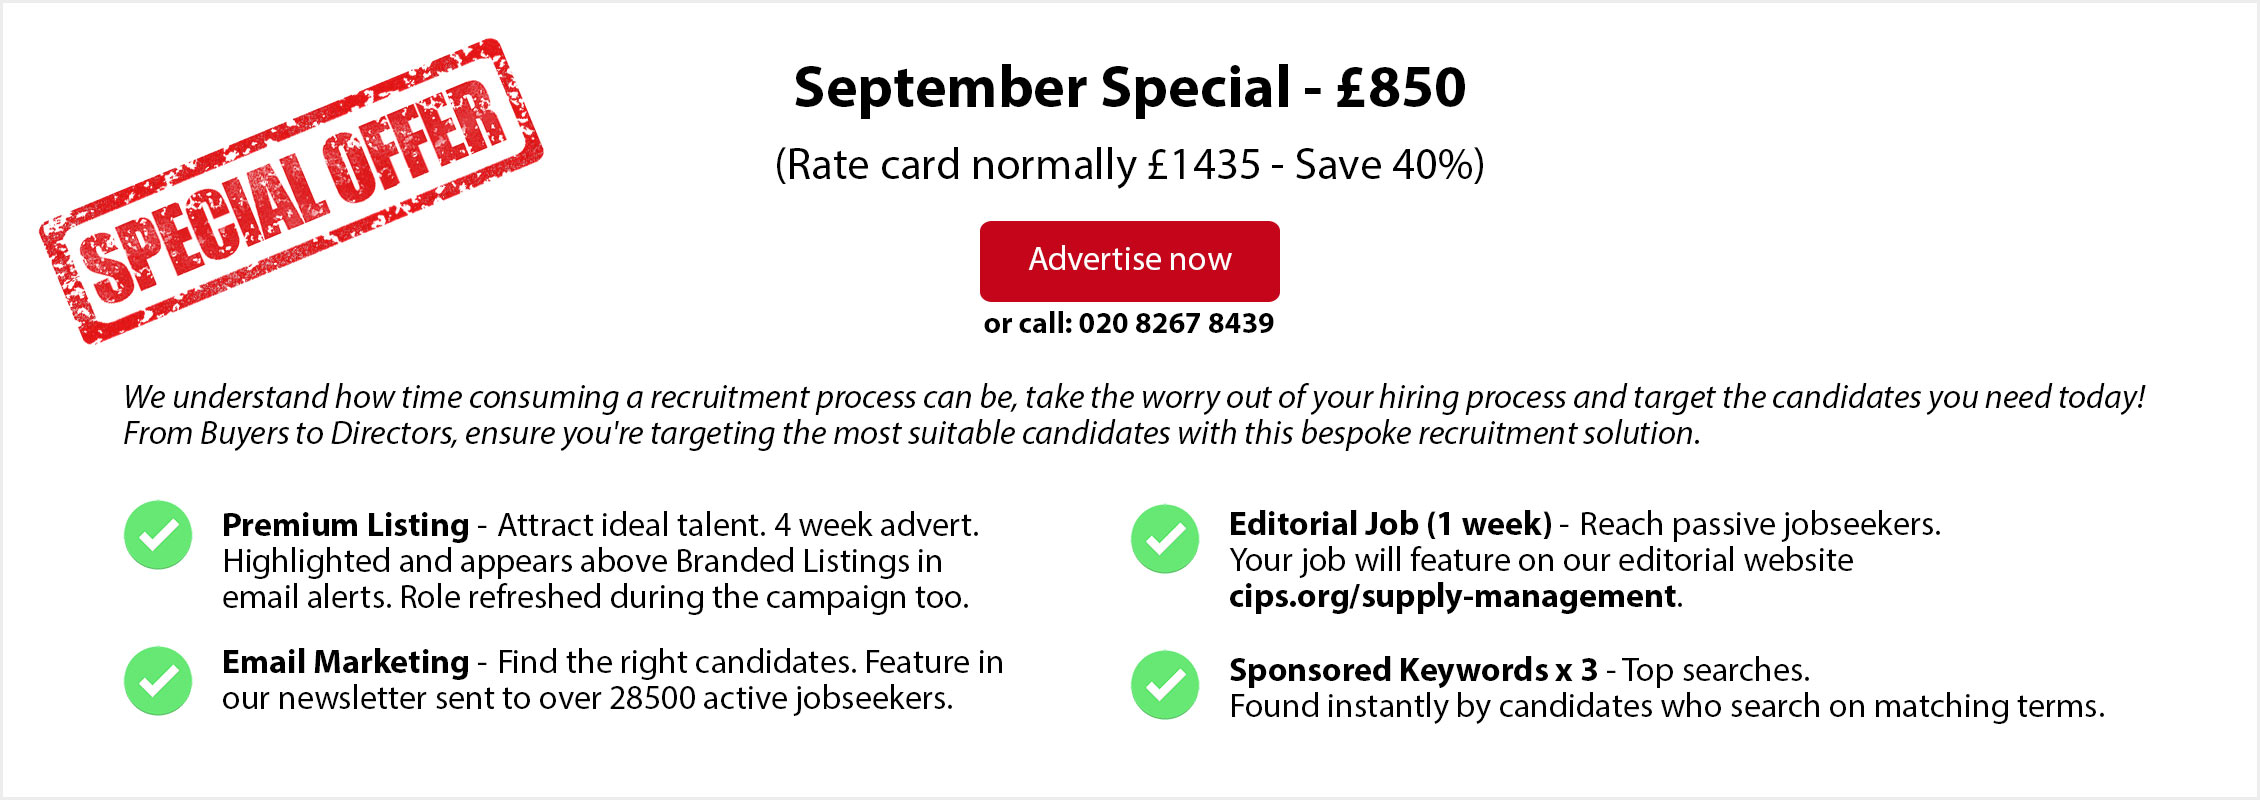 Special Offer. September Special - £850. (Rate card normally £1435 - Save 40%. ADVERTISE NOW or call: 020 8267 8439. From Buyers to Directors, ensure you're targeting the most suitable candidates with this bespoke recruitment solution. Premium Listing - Attract ideal talent. 4 week advert. Highlighted and appears above Branded Listings in email alerts. Role refreshed during the campaign too. Email Marketing - Find the right candidates. Feature in  our newsletter sent to over 28500 active jobseekers. Editorial Job (1 week) - Reach passive jobseekers. Your job will feature on our editorial website  cips.org/supply-management. Sponsored Keywords x 3 - Top searches. Found instantly by candidates who search on matching terms.